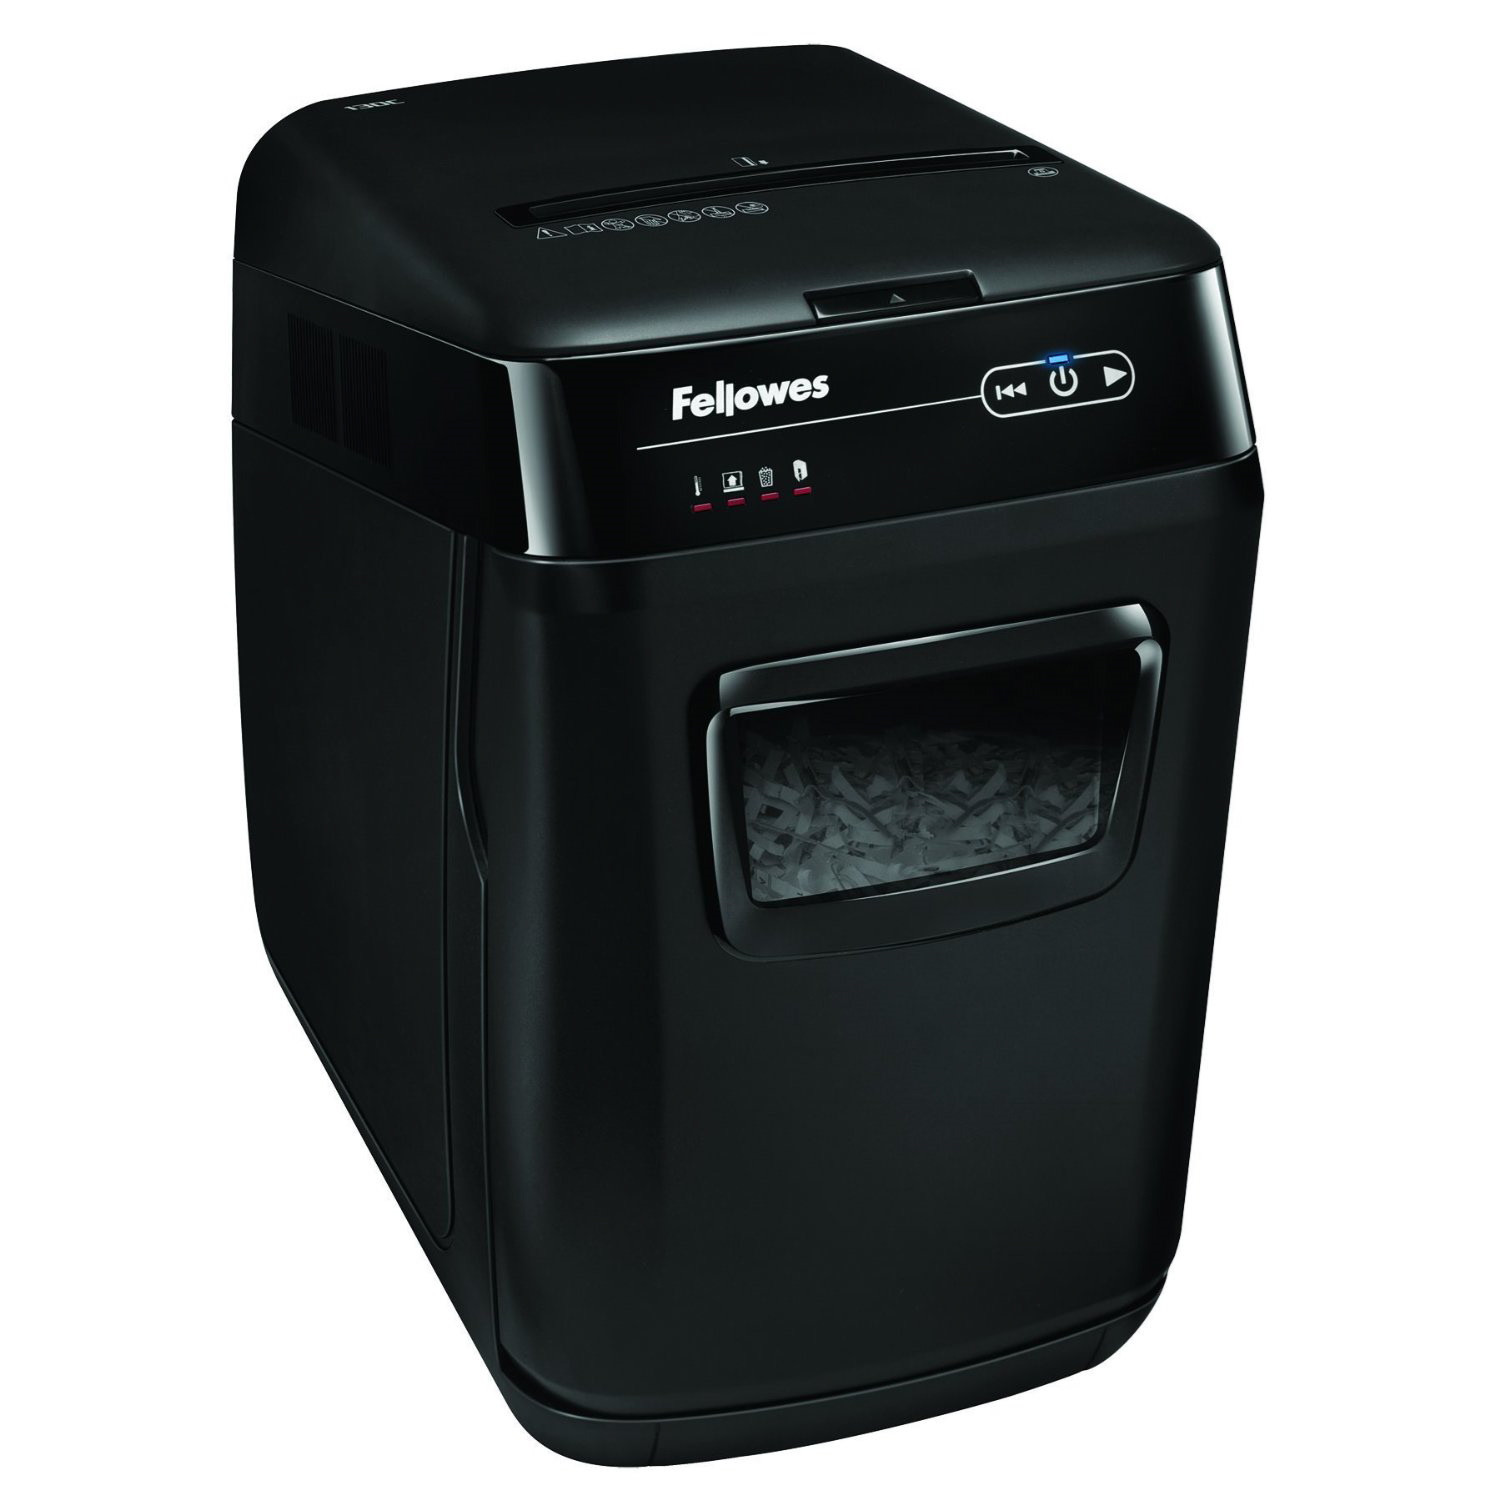 Fellowes AutoMax 130C - Makulator med auto-feed bakke